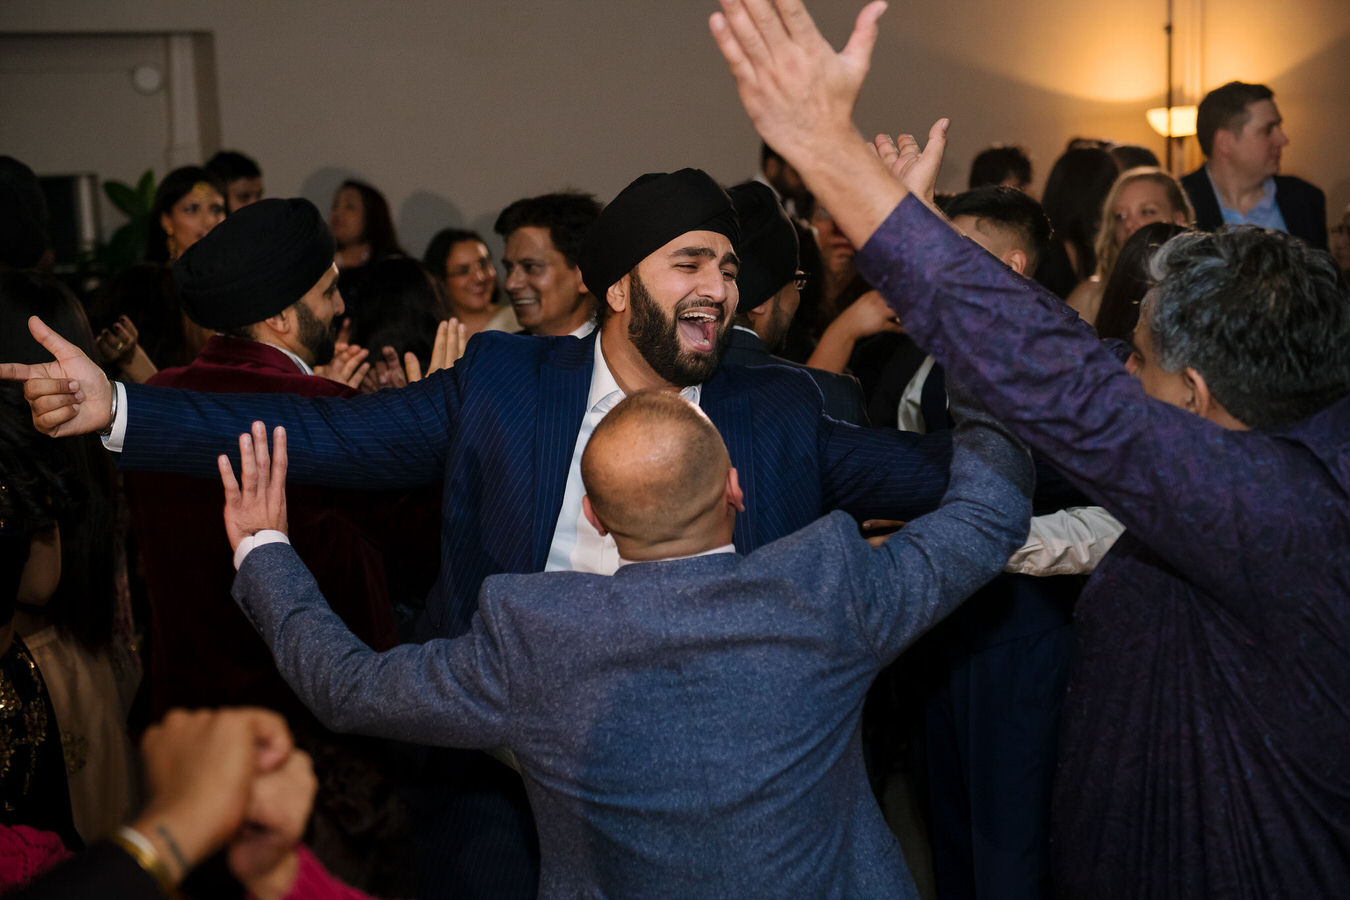 Sikh Asian wedding man's are singing Indian songs with their arms up in the air.